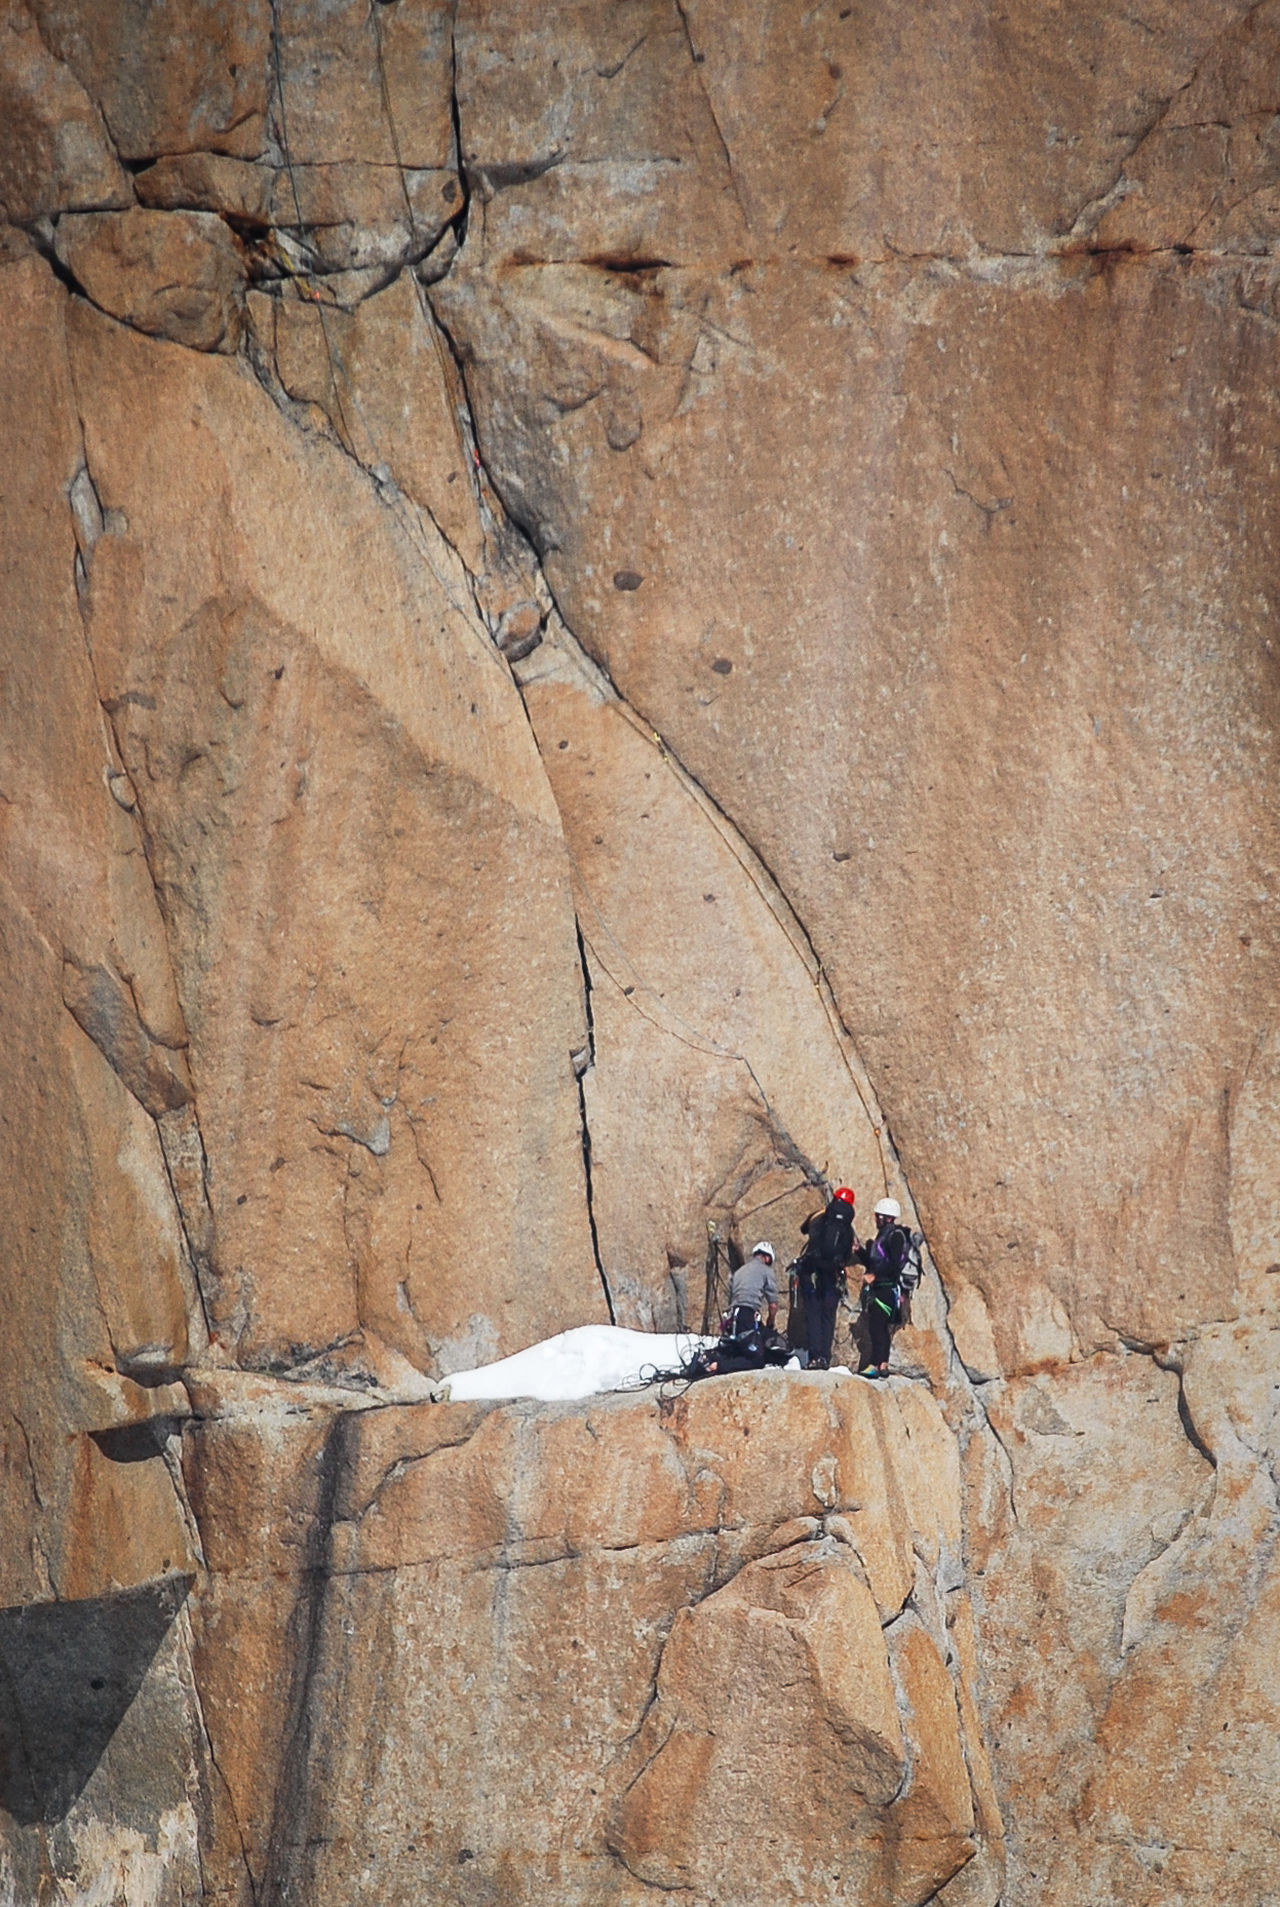 Climbing Lead Climbing Rock Climbing Mont Blanc Extreme Sports Mountains Enjoying The View Seeing The Sights Natgeotravel Huffpostgram Nikon Dslr Check This Out Hello World Feel The Journey Adventure Club